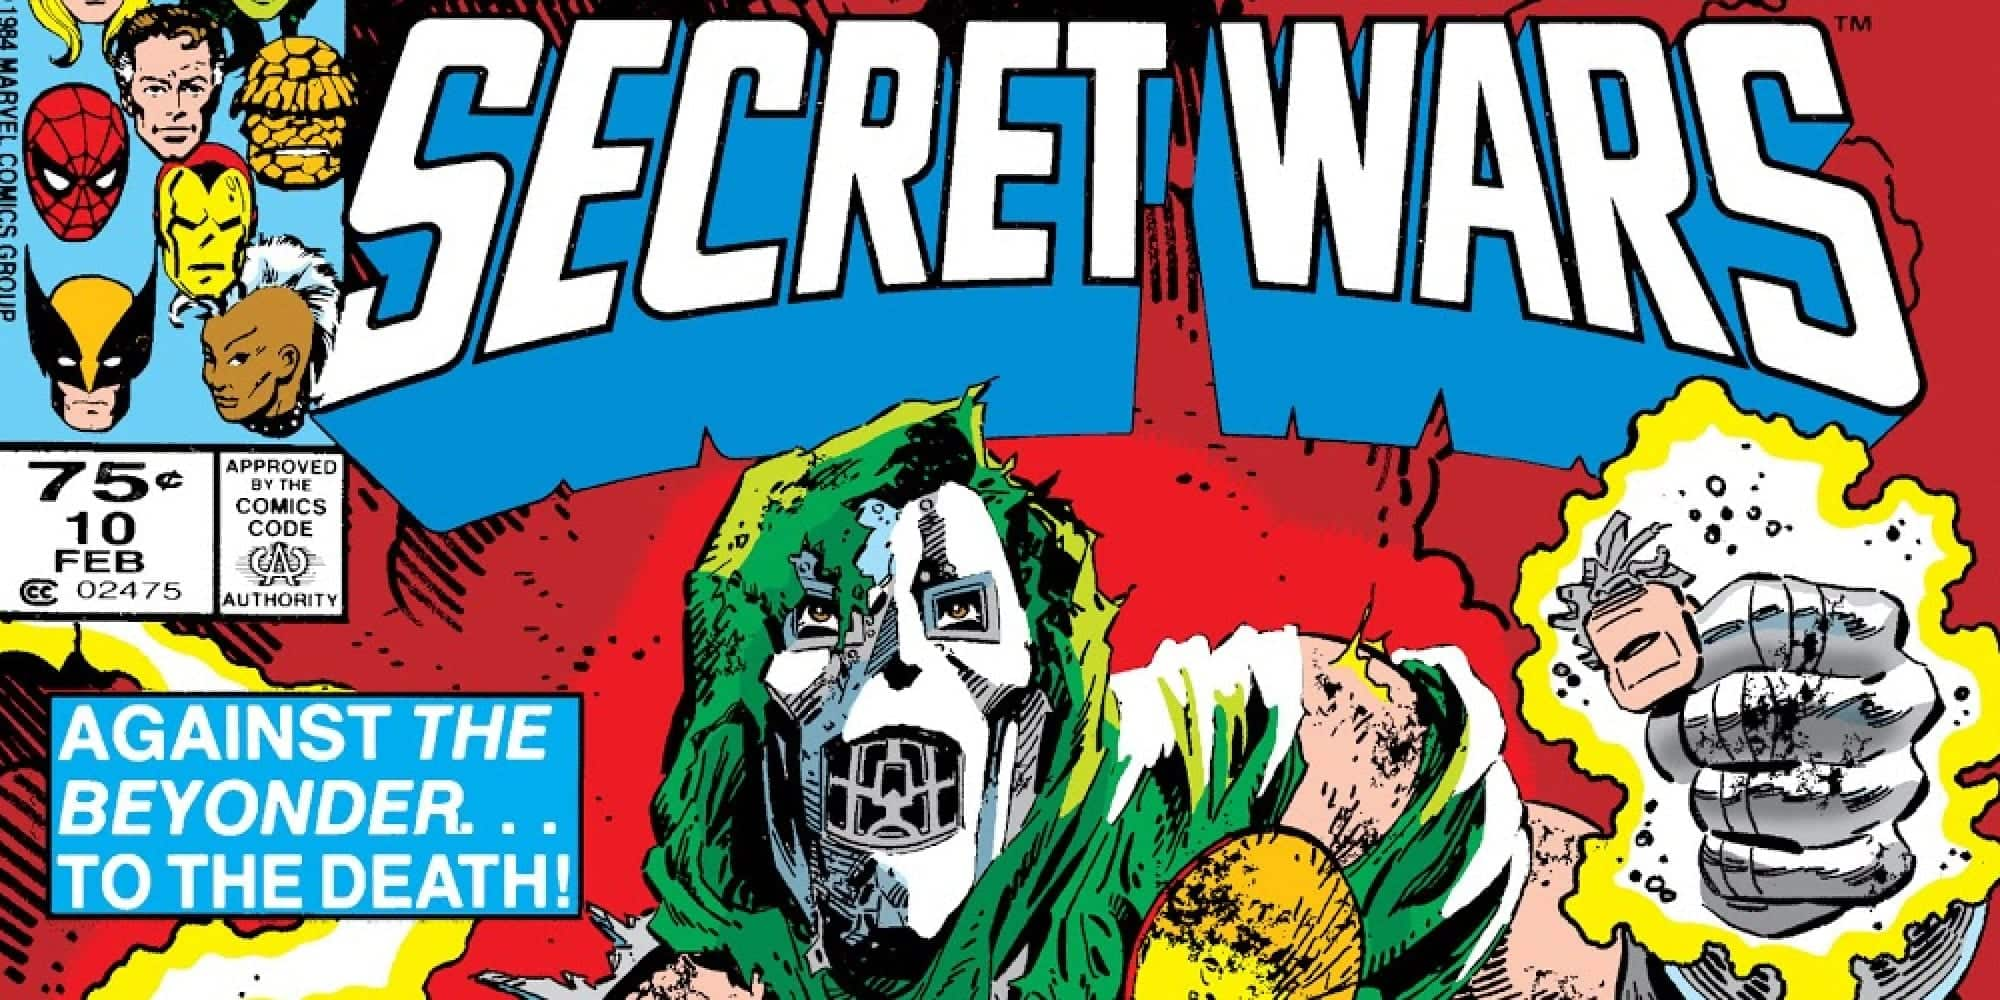 Russo Brothers Back Marvel Studios Secret Wars Featured